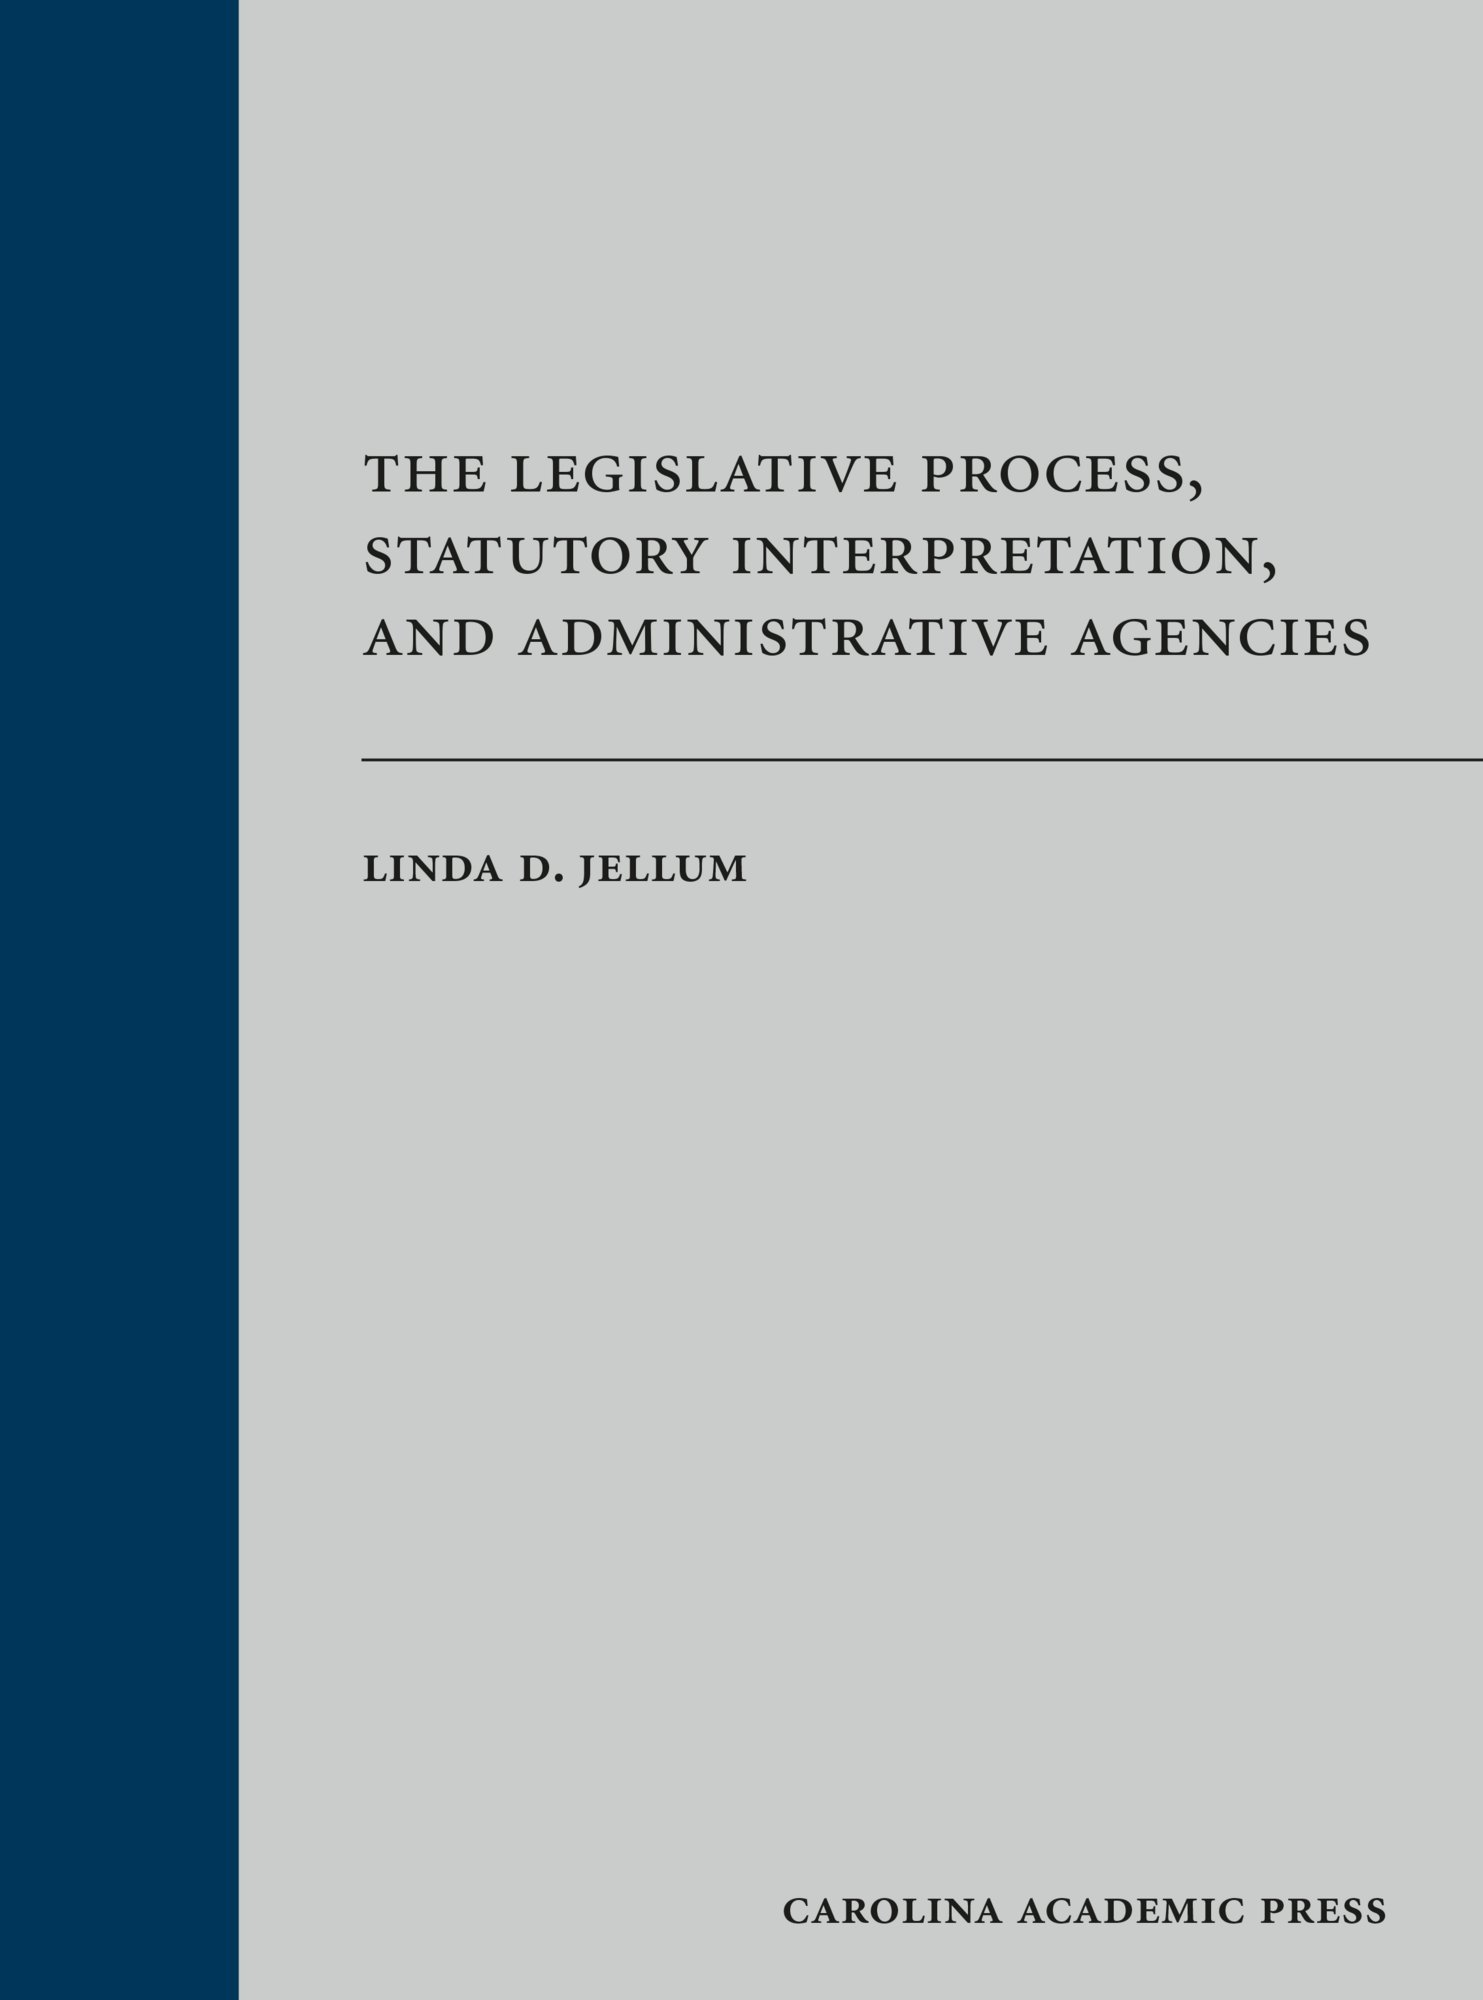 Image OfThe Legislative Process, Statutory Interpretation, And Administrative Agencies